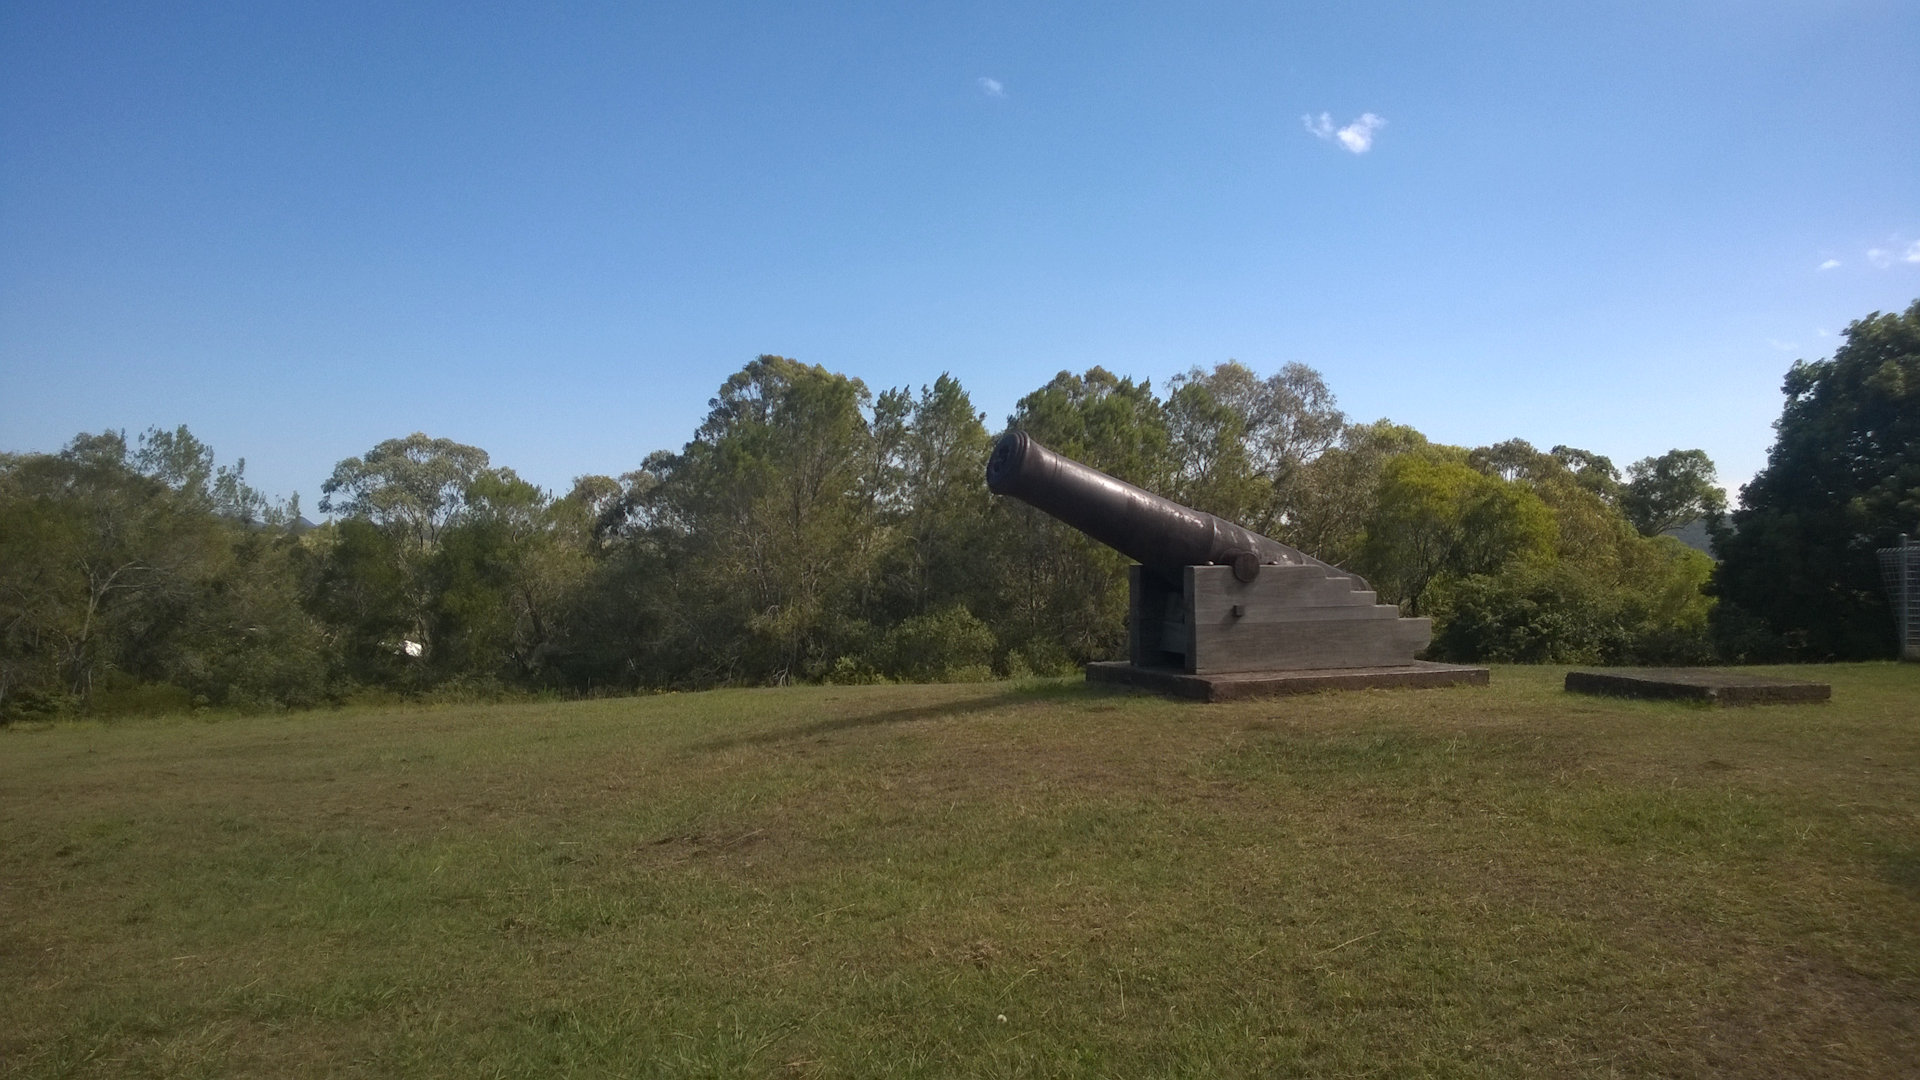 Cannon on top of Silo Hill which contains 8 underground grain silos in a hill looking over the Stroud township, built in 1841